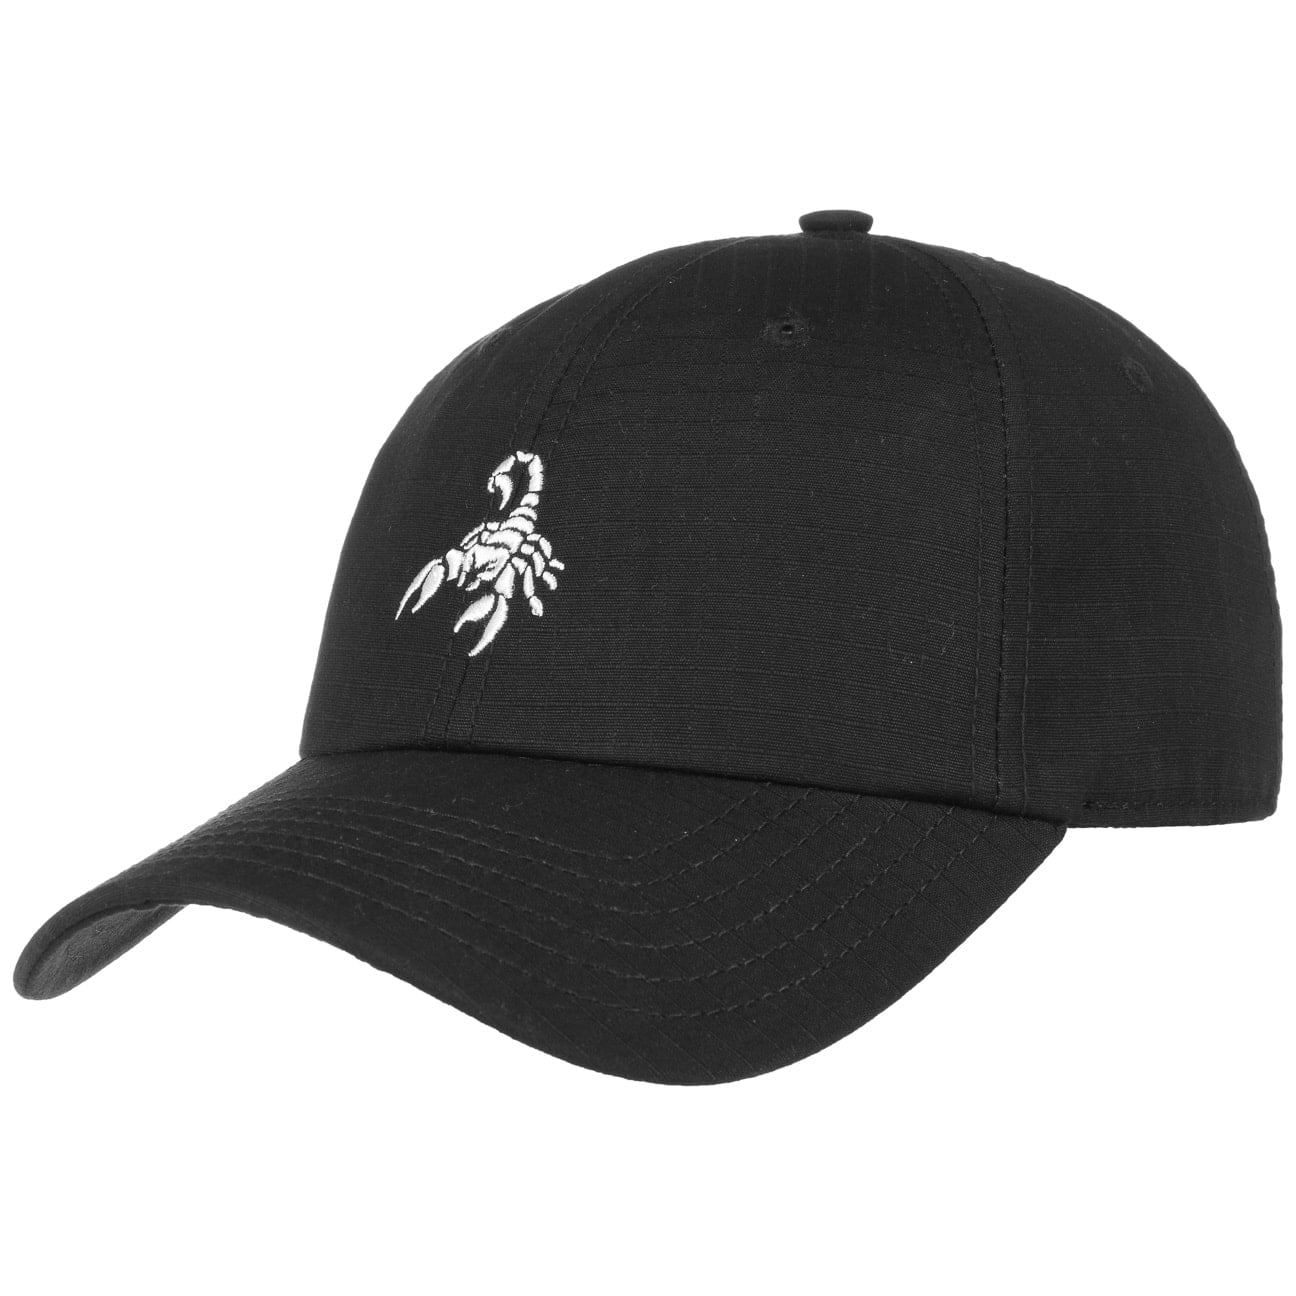 Gorra Coast to Coast by Cayler & Sons  gorra de baseball